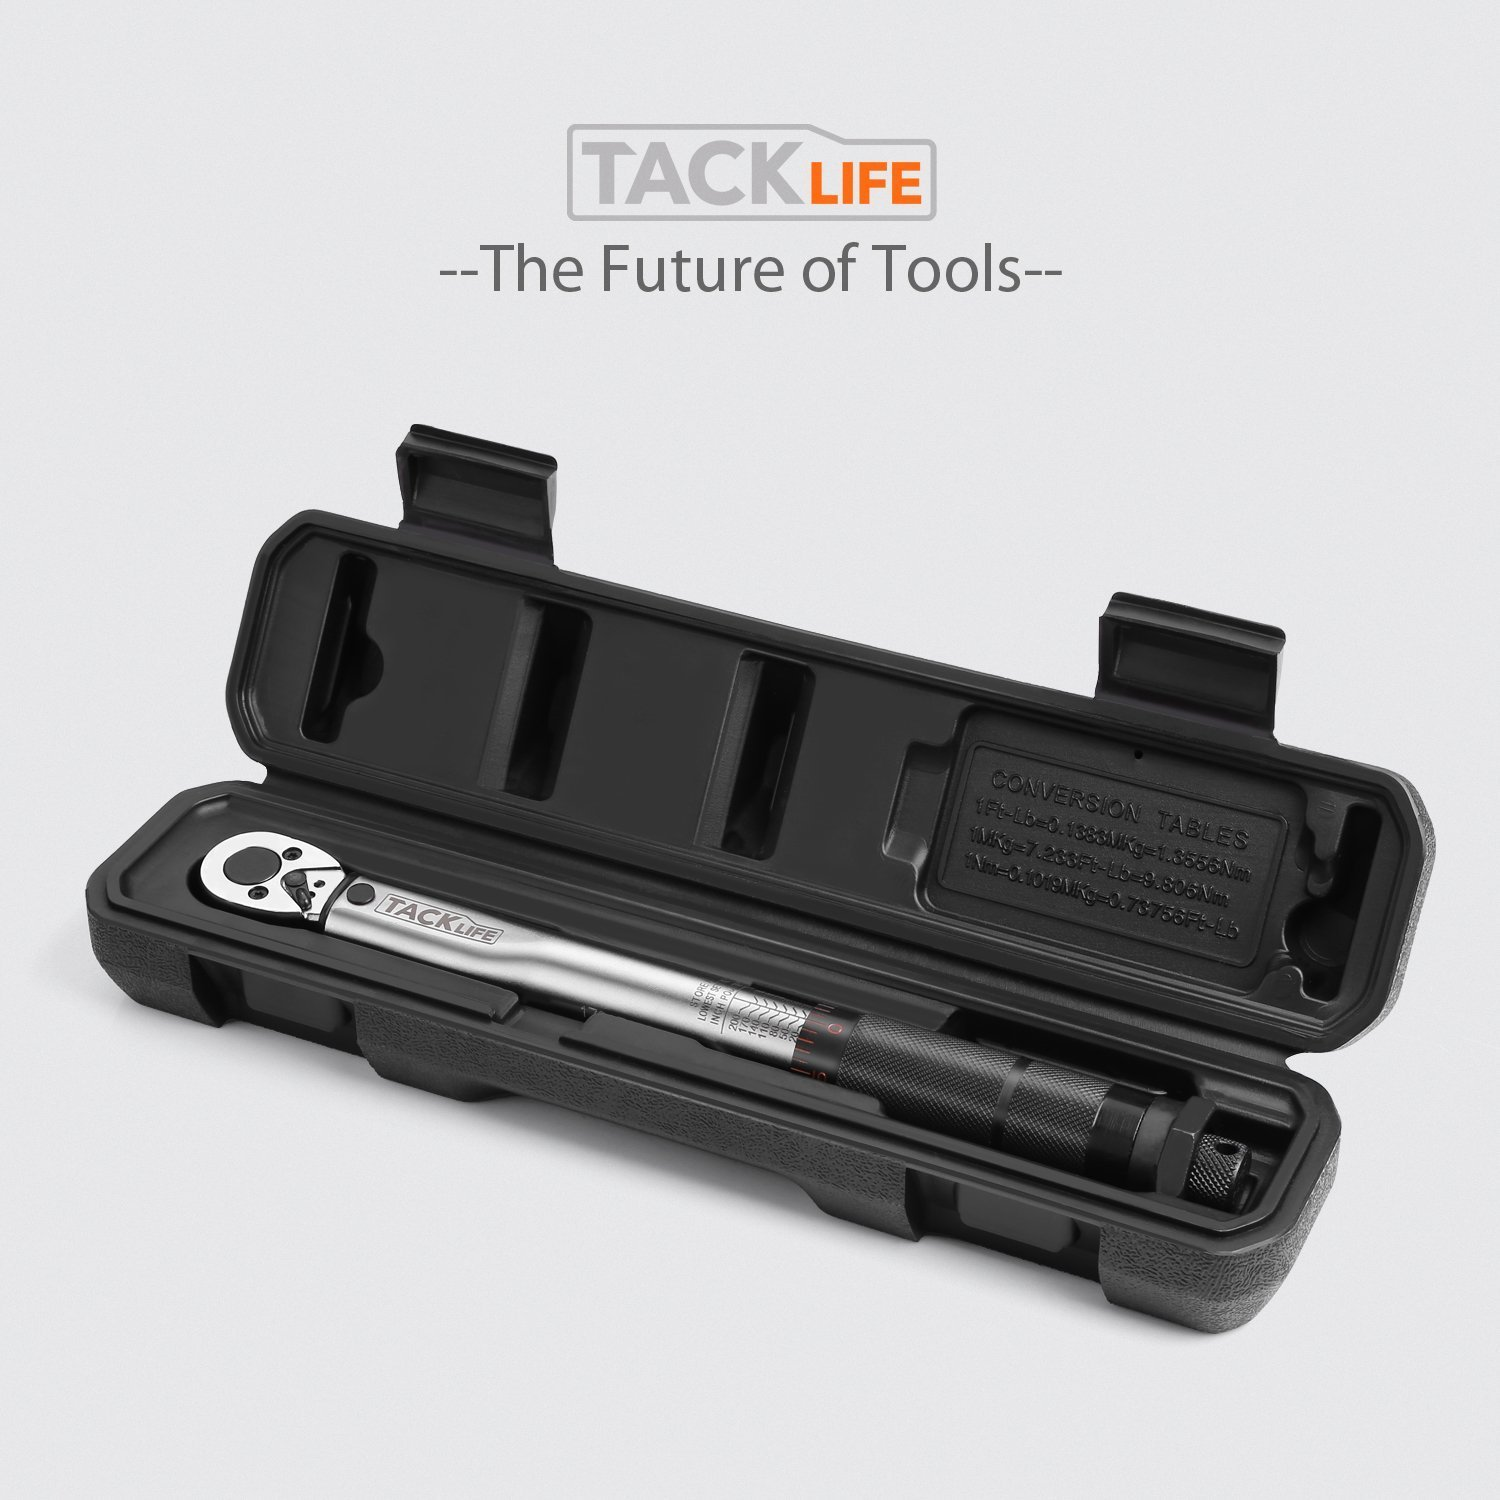 1//2/'/' /& 1//4/'/' Adaptor Tacklife Torque Wrench 3//8 Inch Drive 13.6-108.5 NM 10-//80 lb-ft HTW1A with 2.95-inch Extension Bar